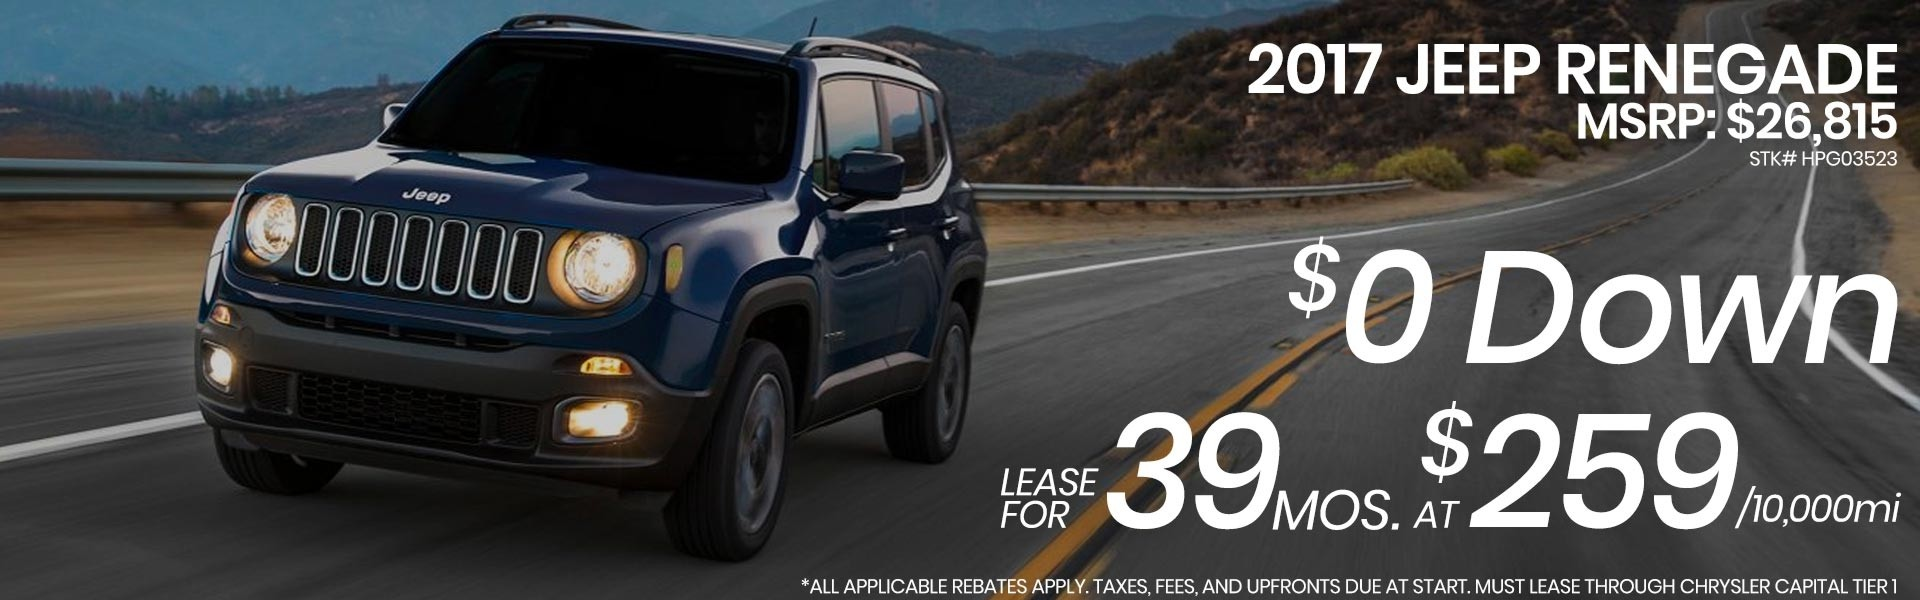 jeep-renegade-banner